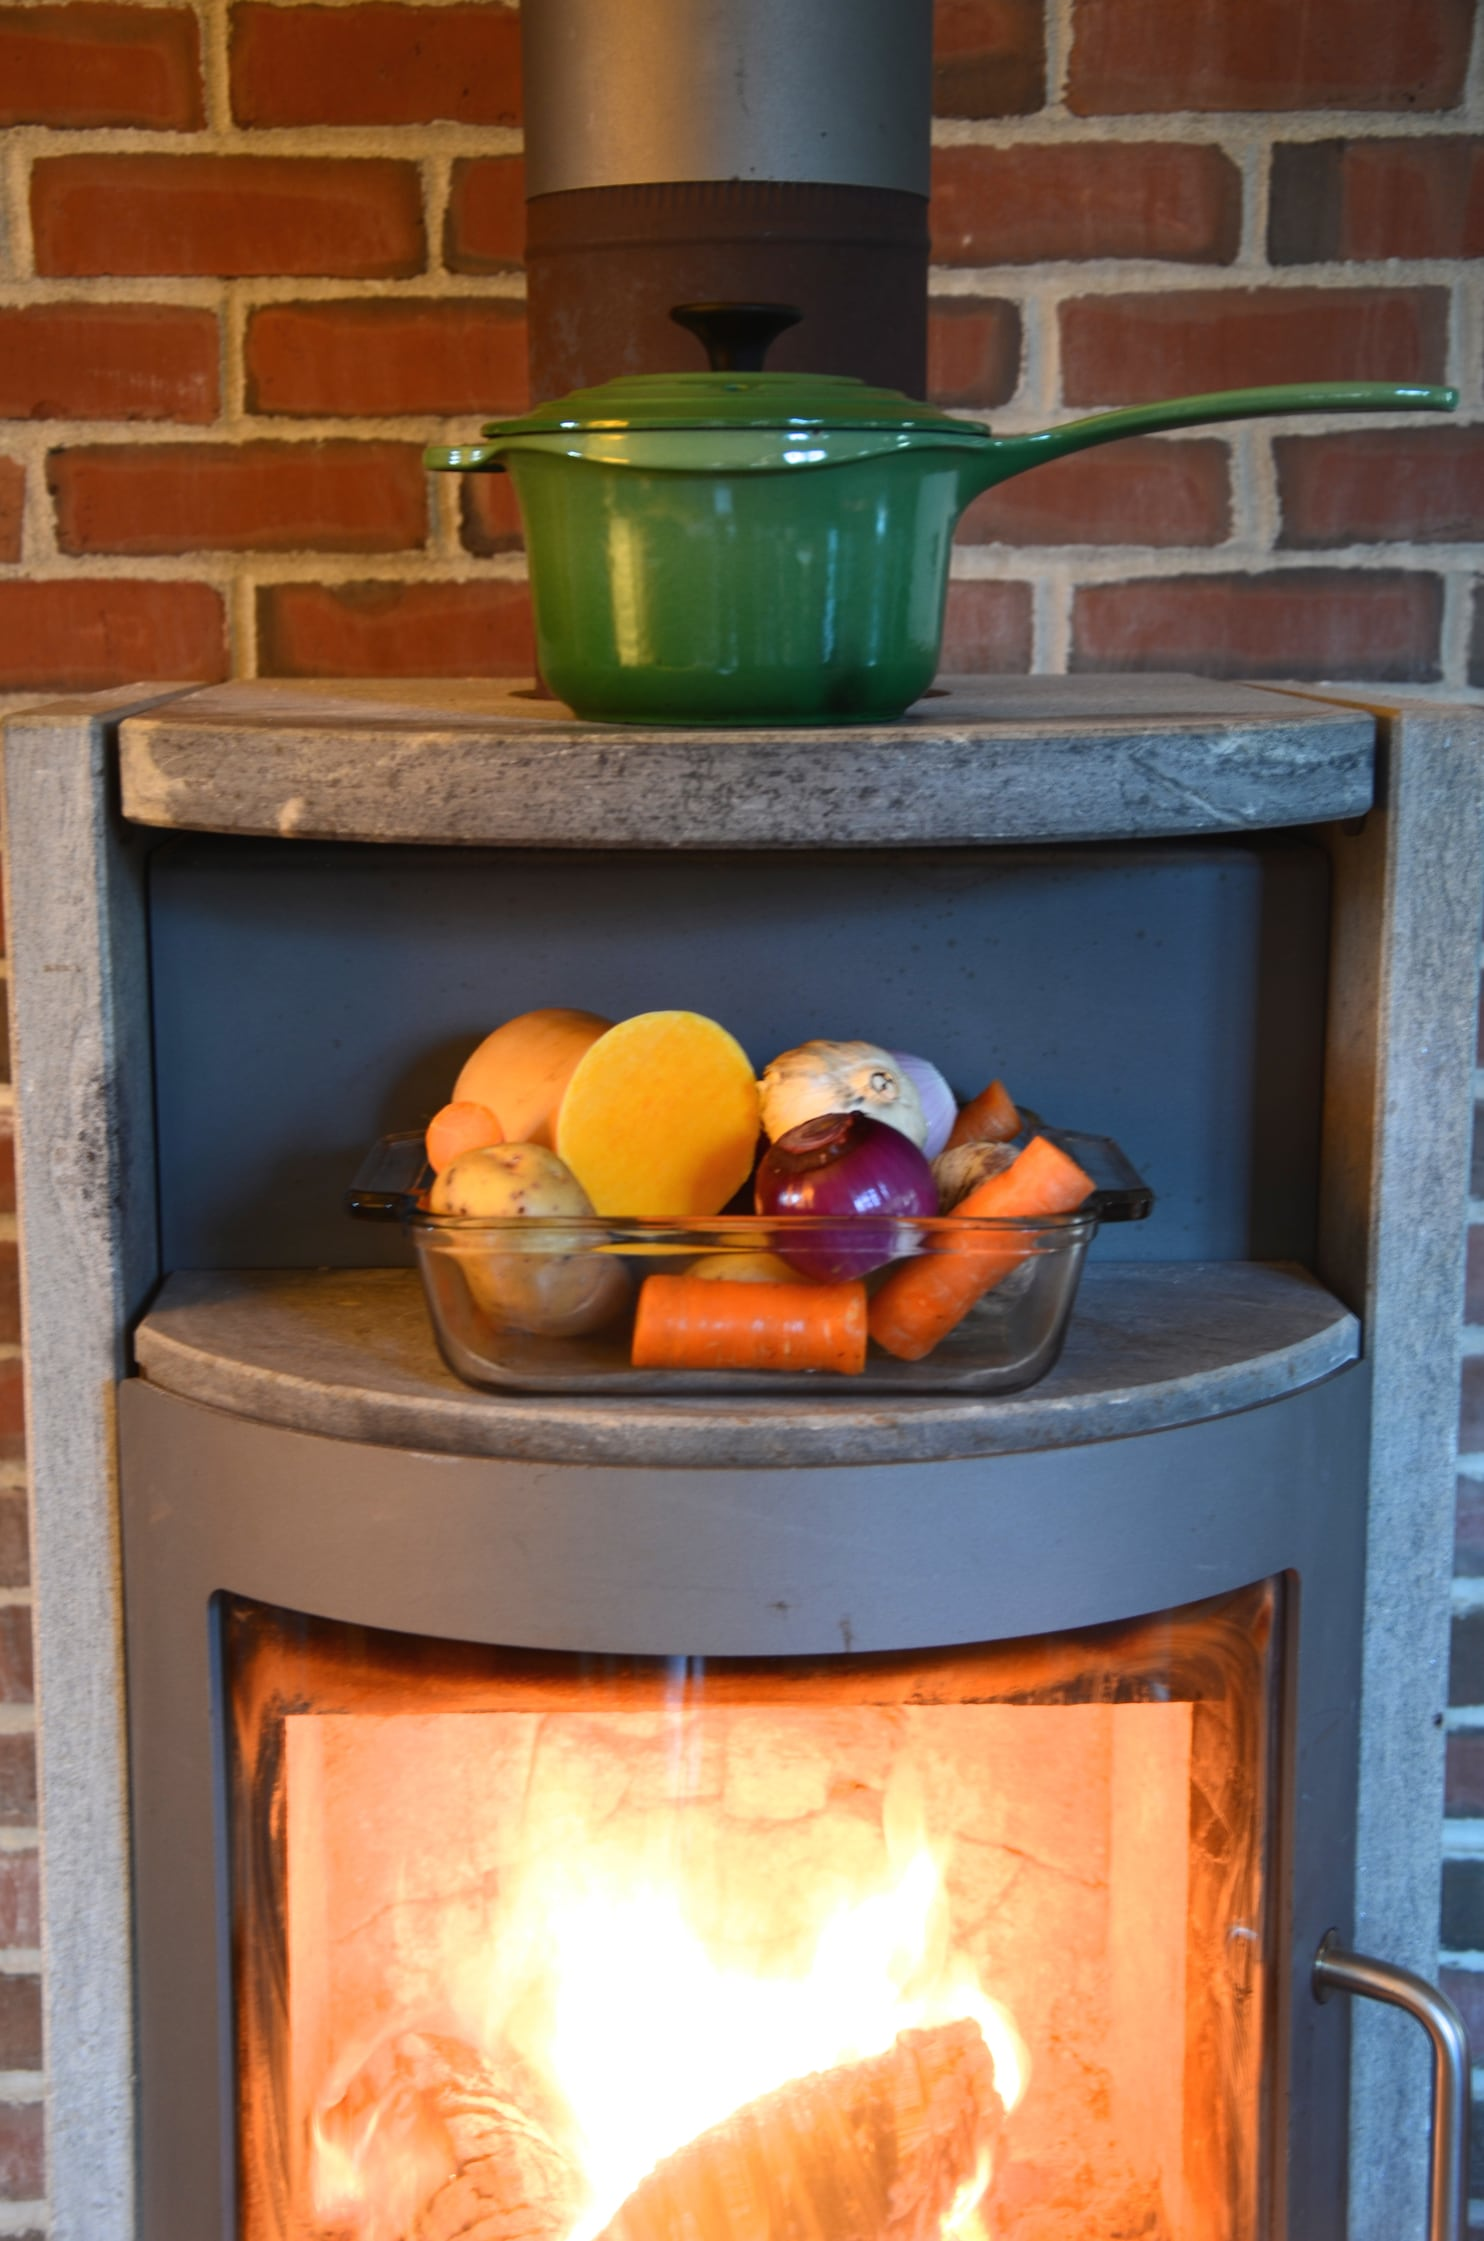 1970s Gas Fireplace - Year of Clean Water